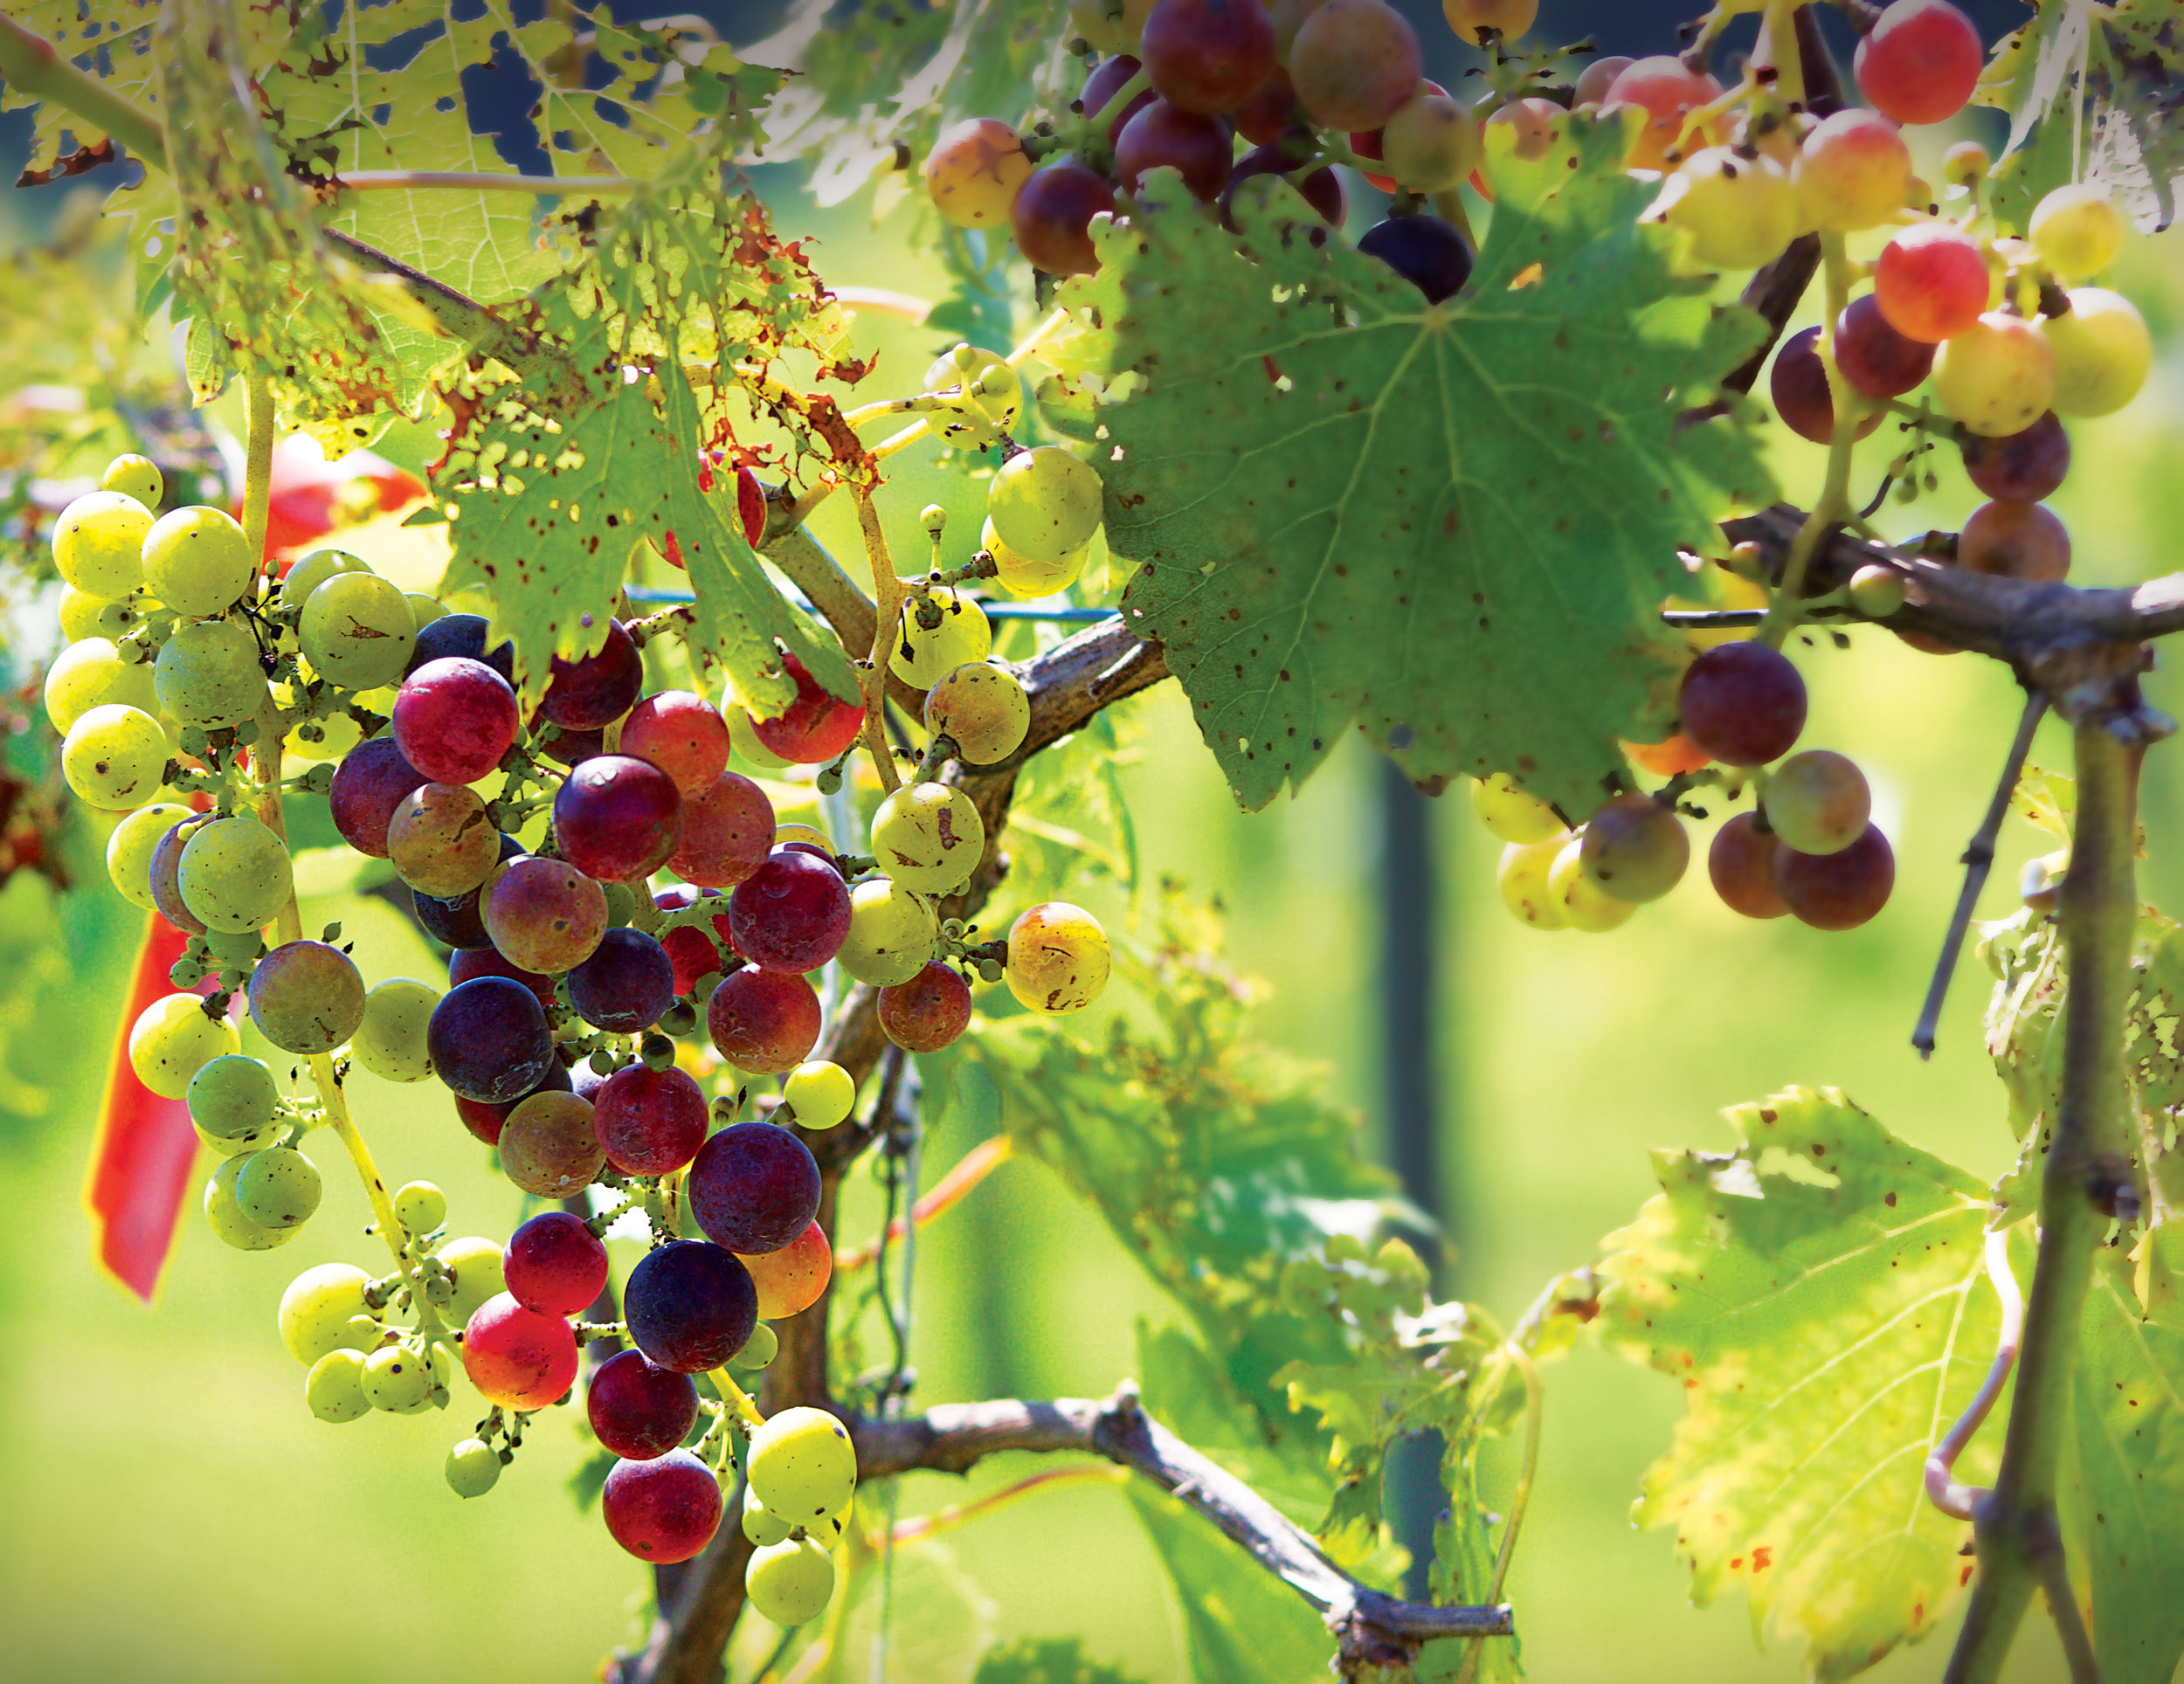 Most of the grapes used to make their wine is grown right on their family farm.